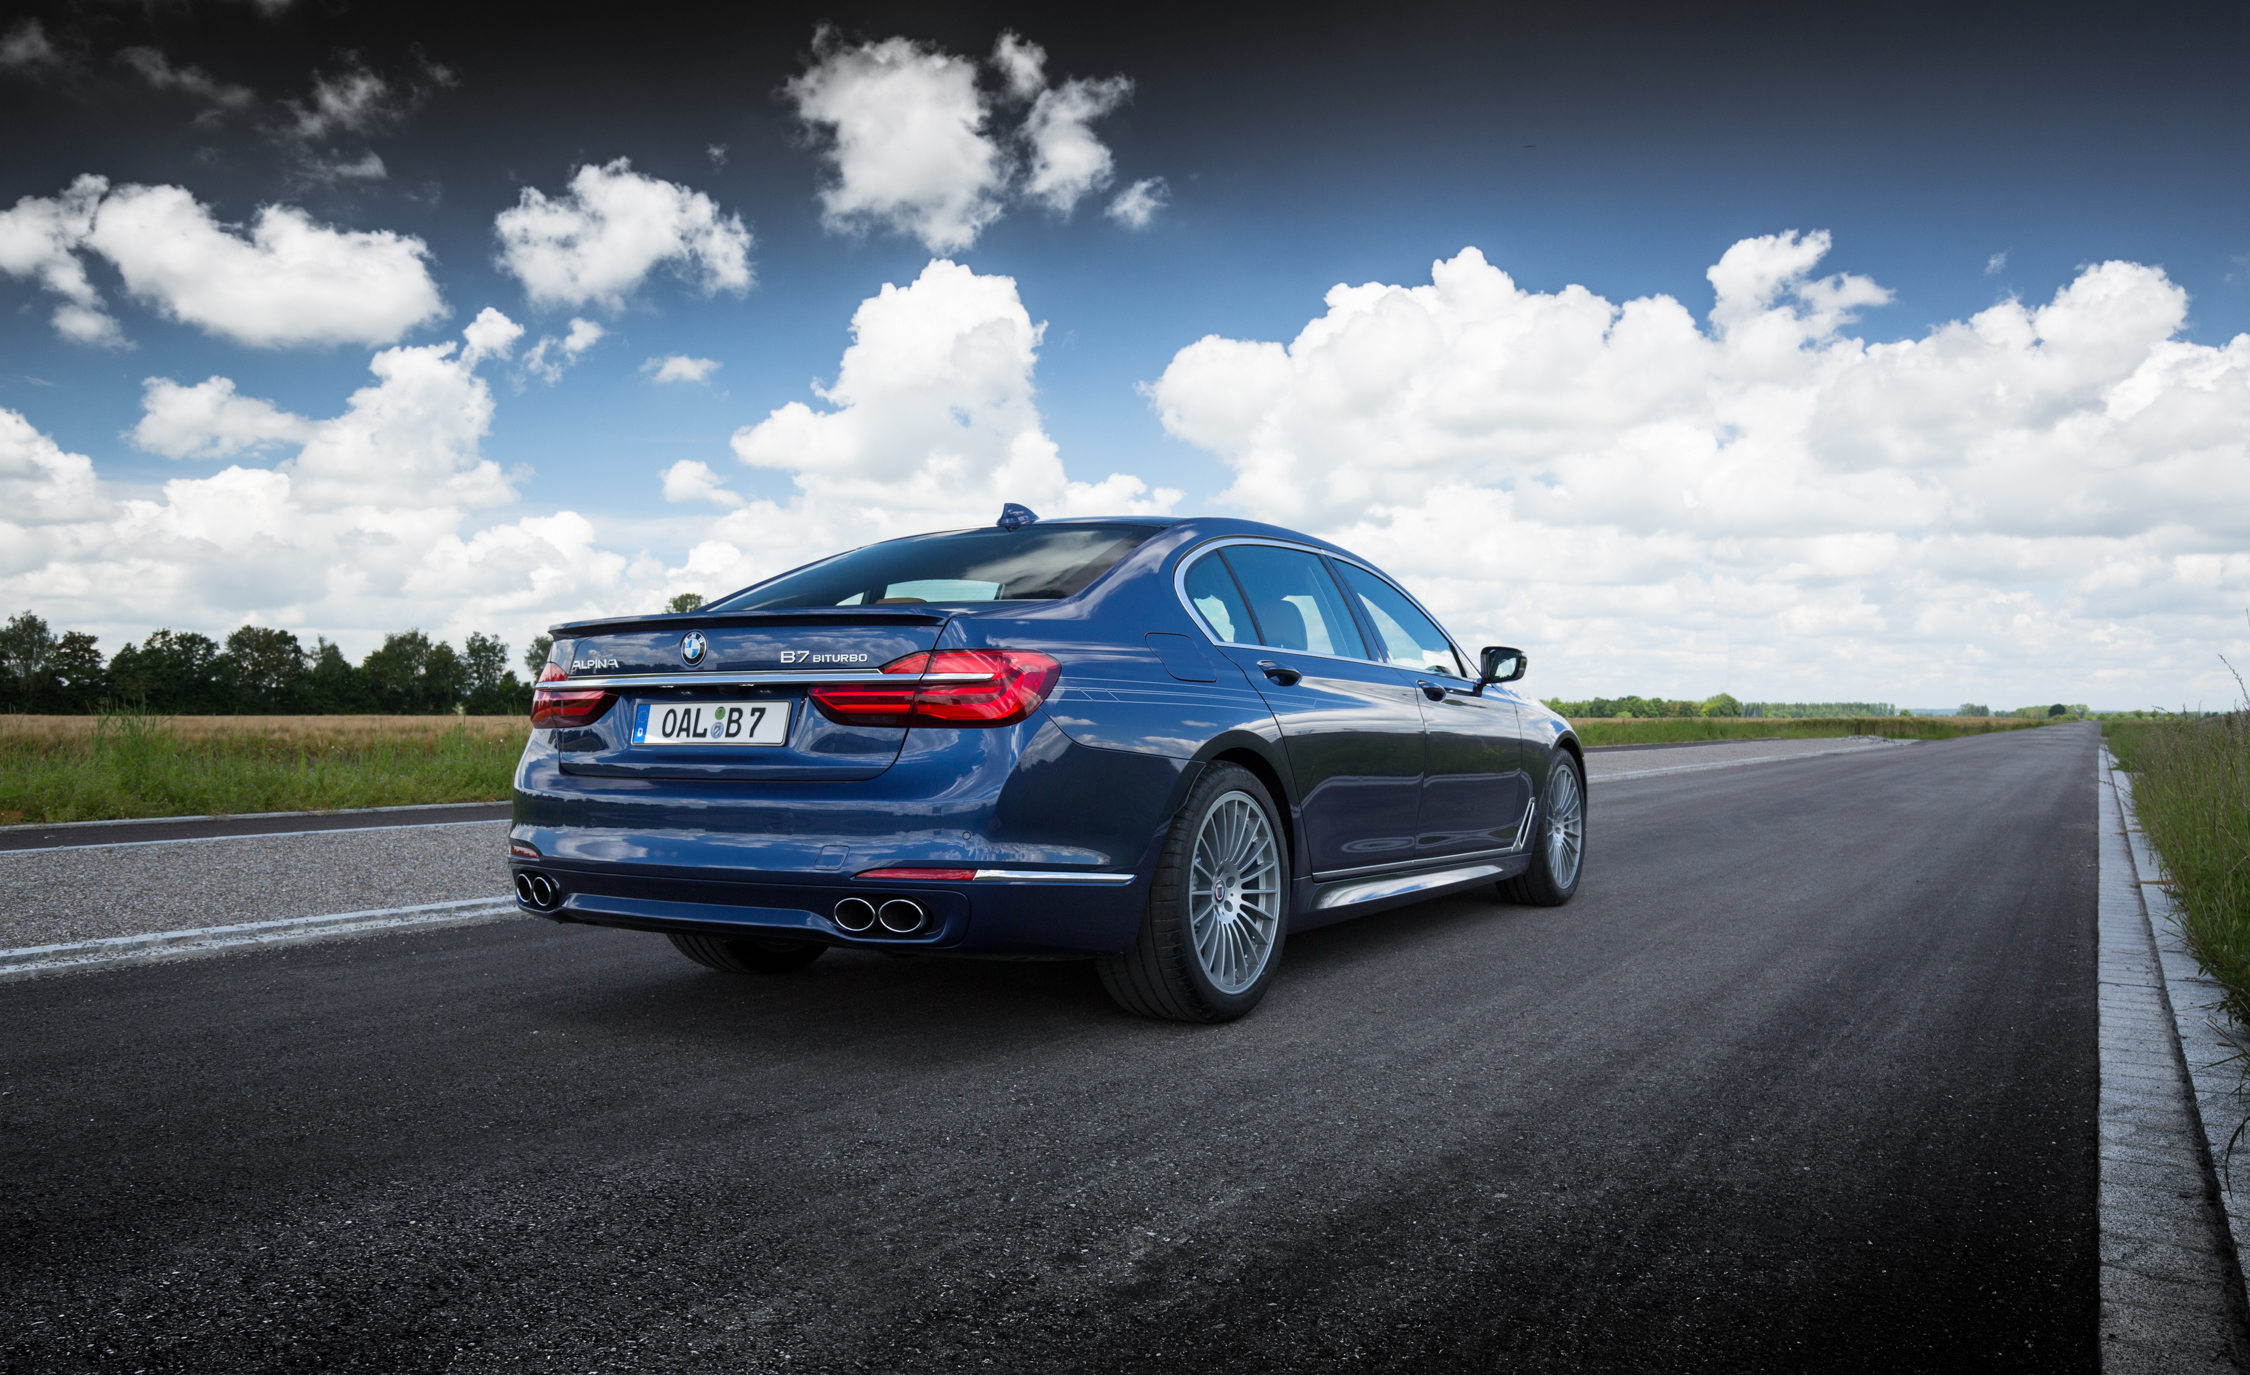 2017 BMW Alpina B7 Exterior Rear And Side (Photo 7 of 45)